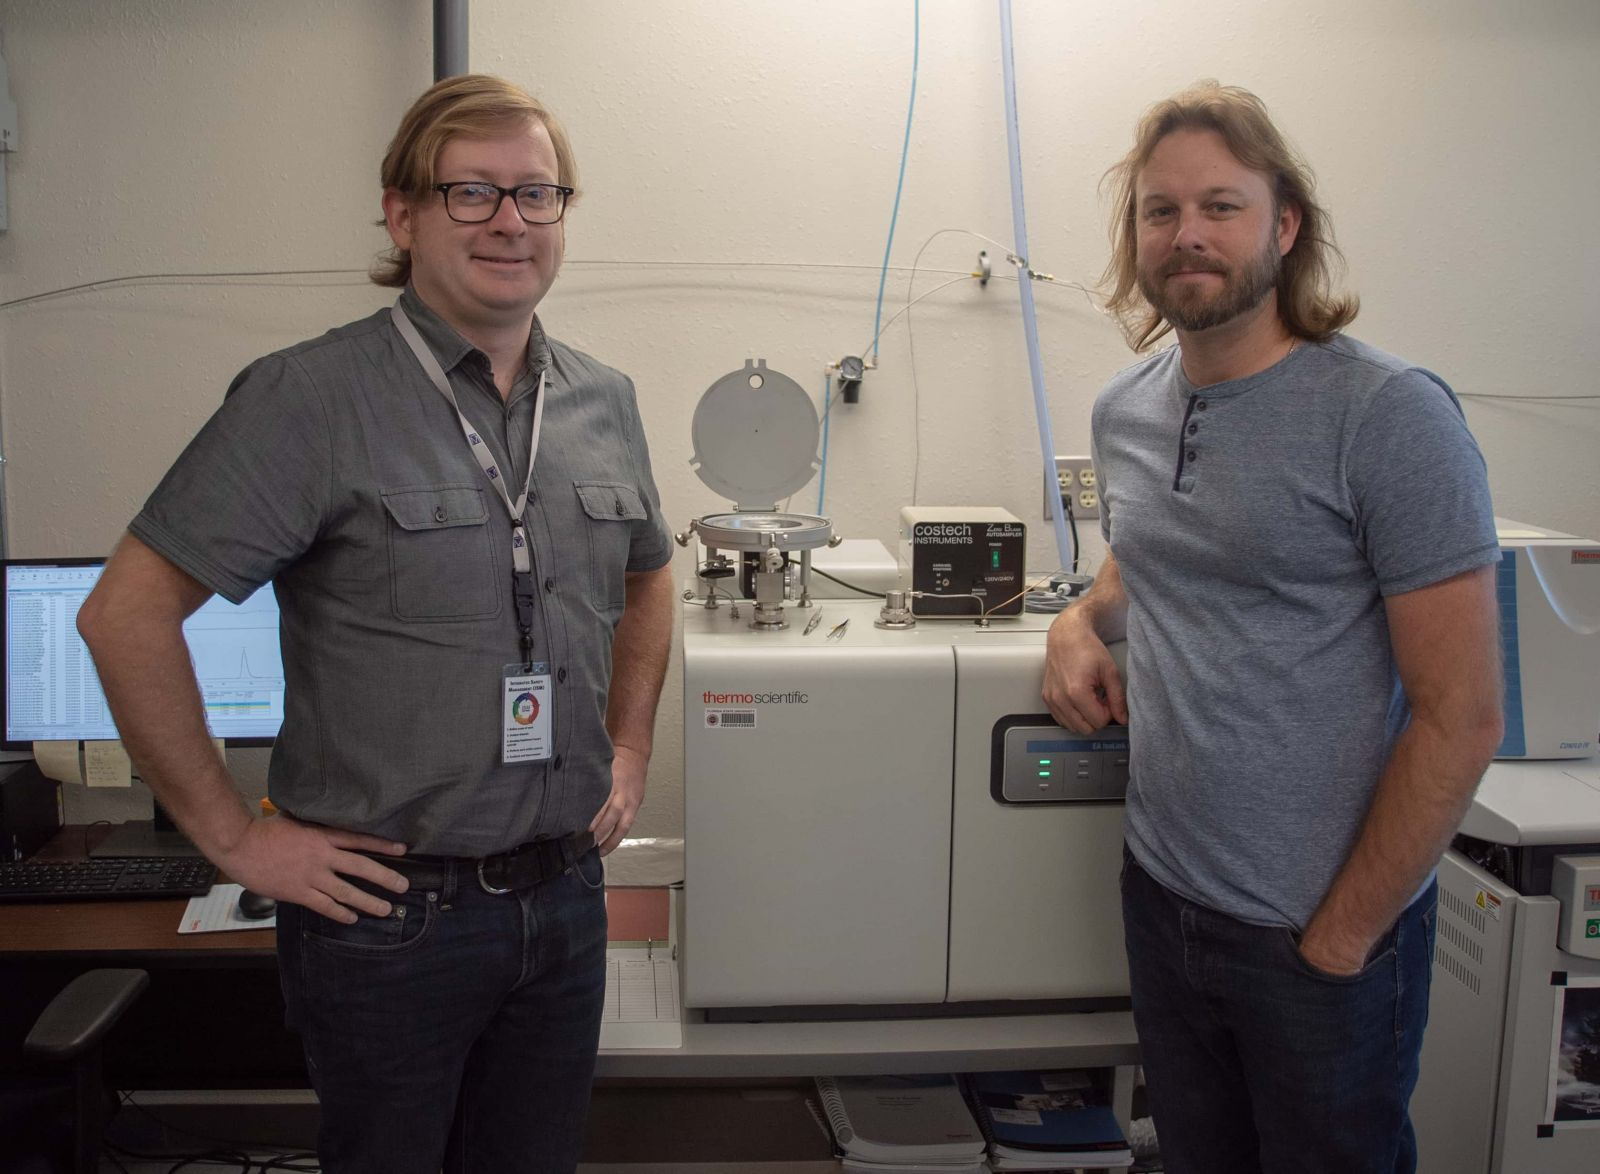 Seth Young (left) and Jeremy Owens (right), assistant professors in the Department of Earth, Ocean and Atmospheric Science